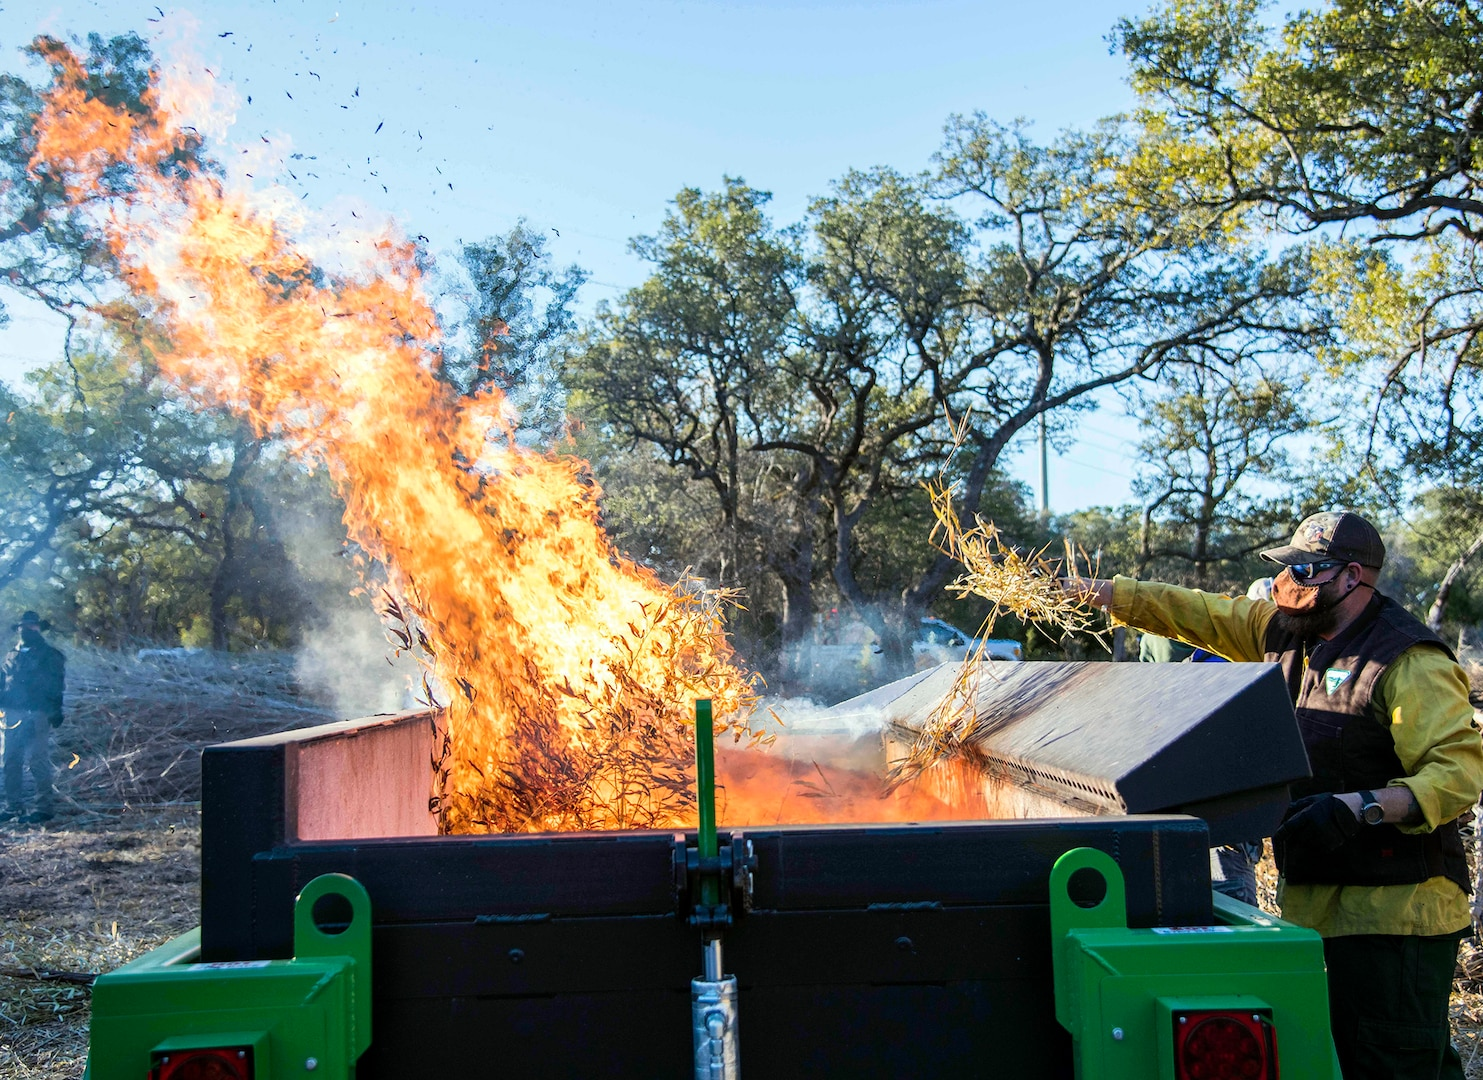 Work crews made up of members of the 802nd Civil Engineer Squadron, Joint Base San Antonio Natural Resources Office, Texas A&M Natural Resources Institute and the JBSA Wildland Support Module burned golden bamboo and cedar mulch